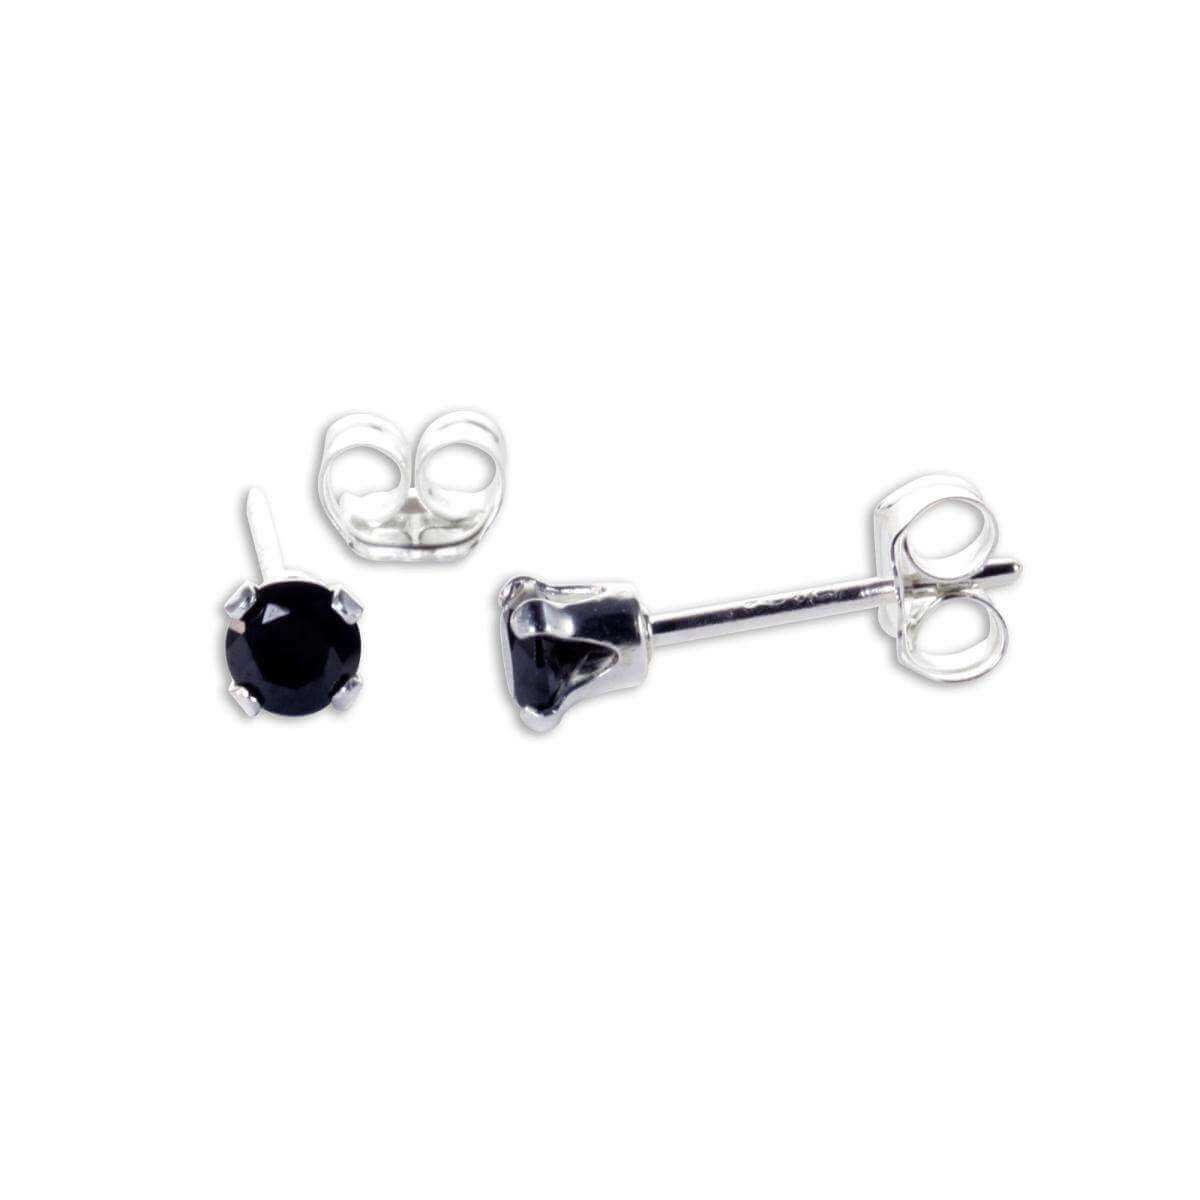 Sterling Silver Black CZ 3mm Round Stud Earrings